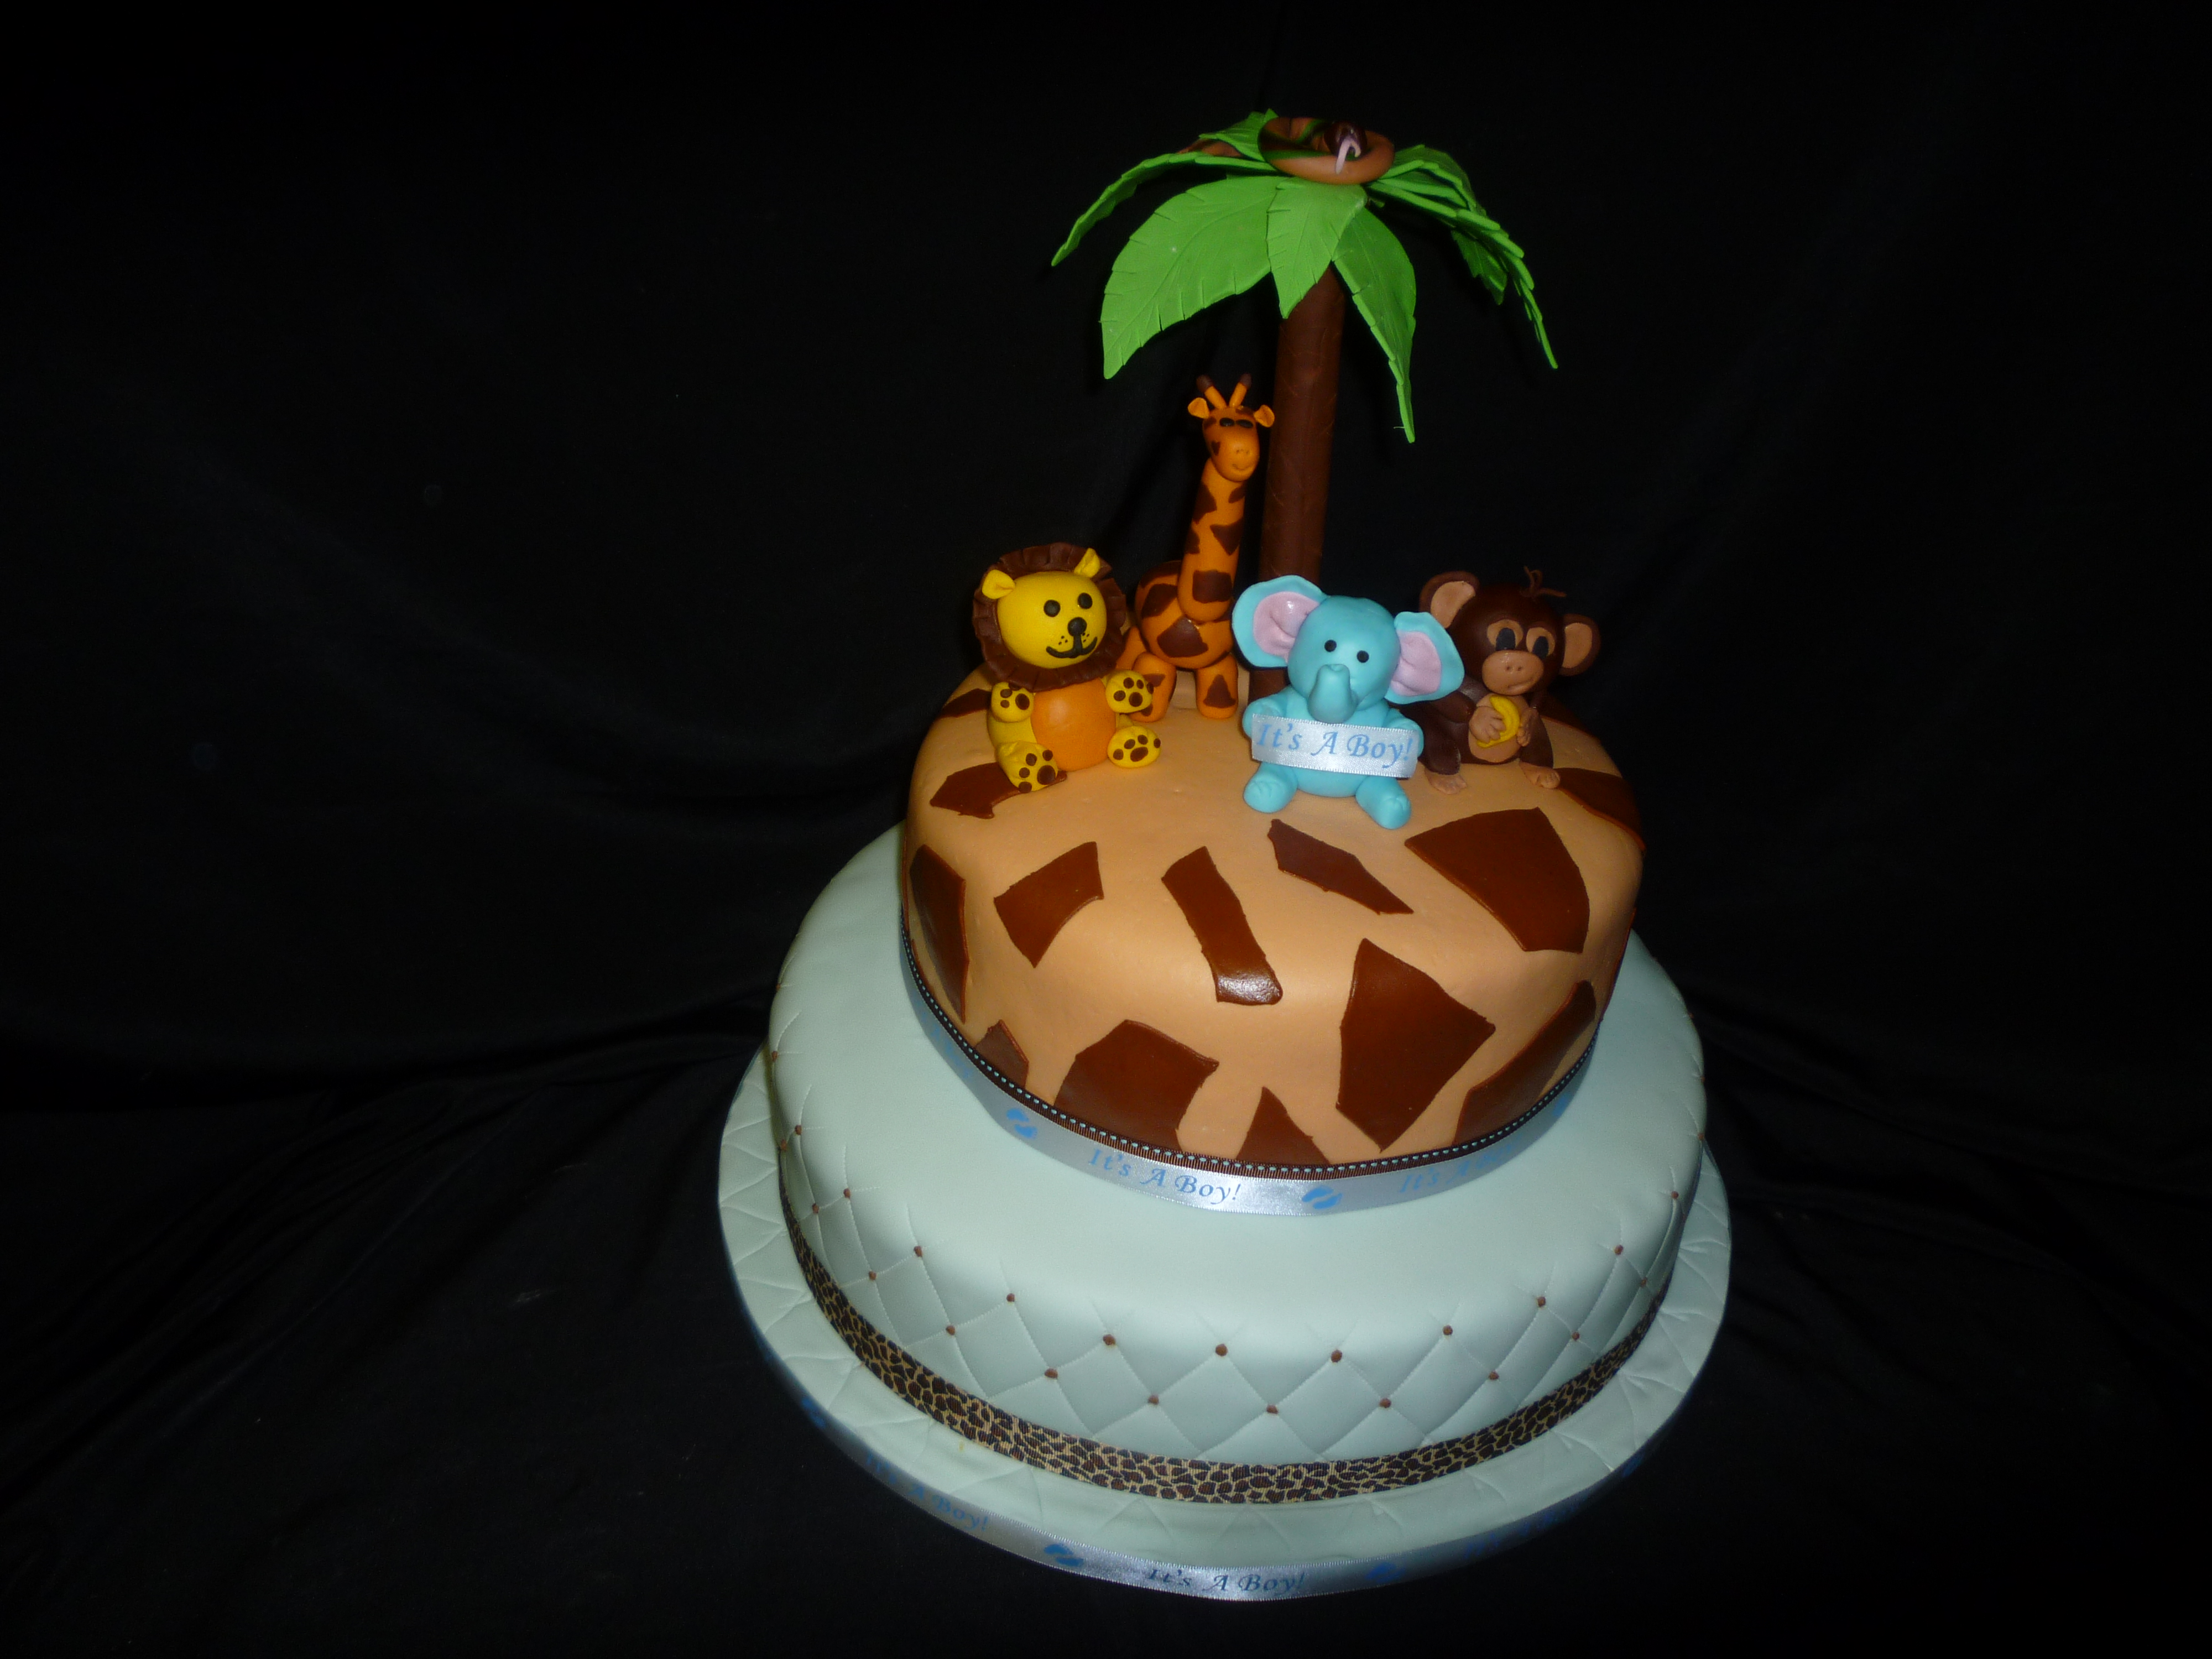 "All animals and palm tree are hand made from gumpaste/fondant. Top tier is 10"". Bottom tier is 14"", quilted with chocolate buttercream dots."